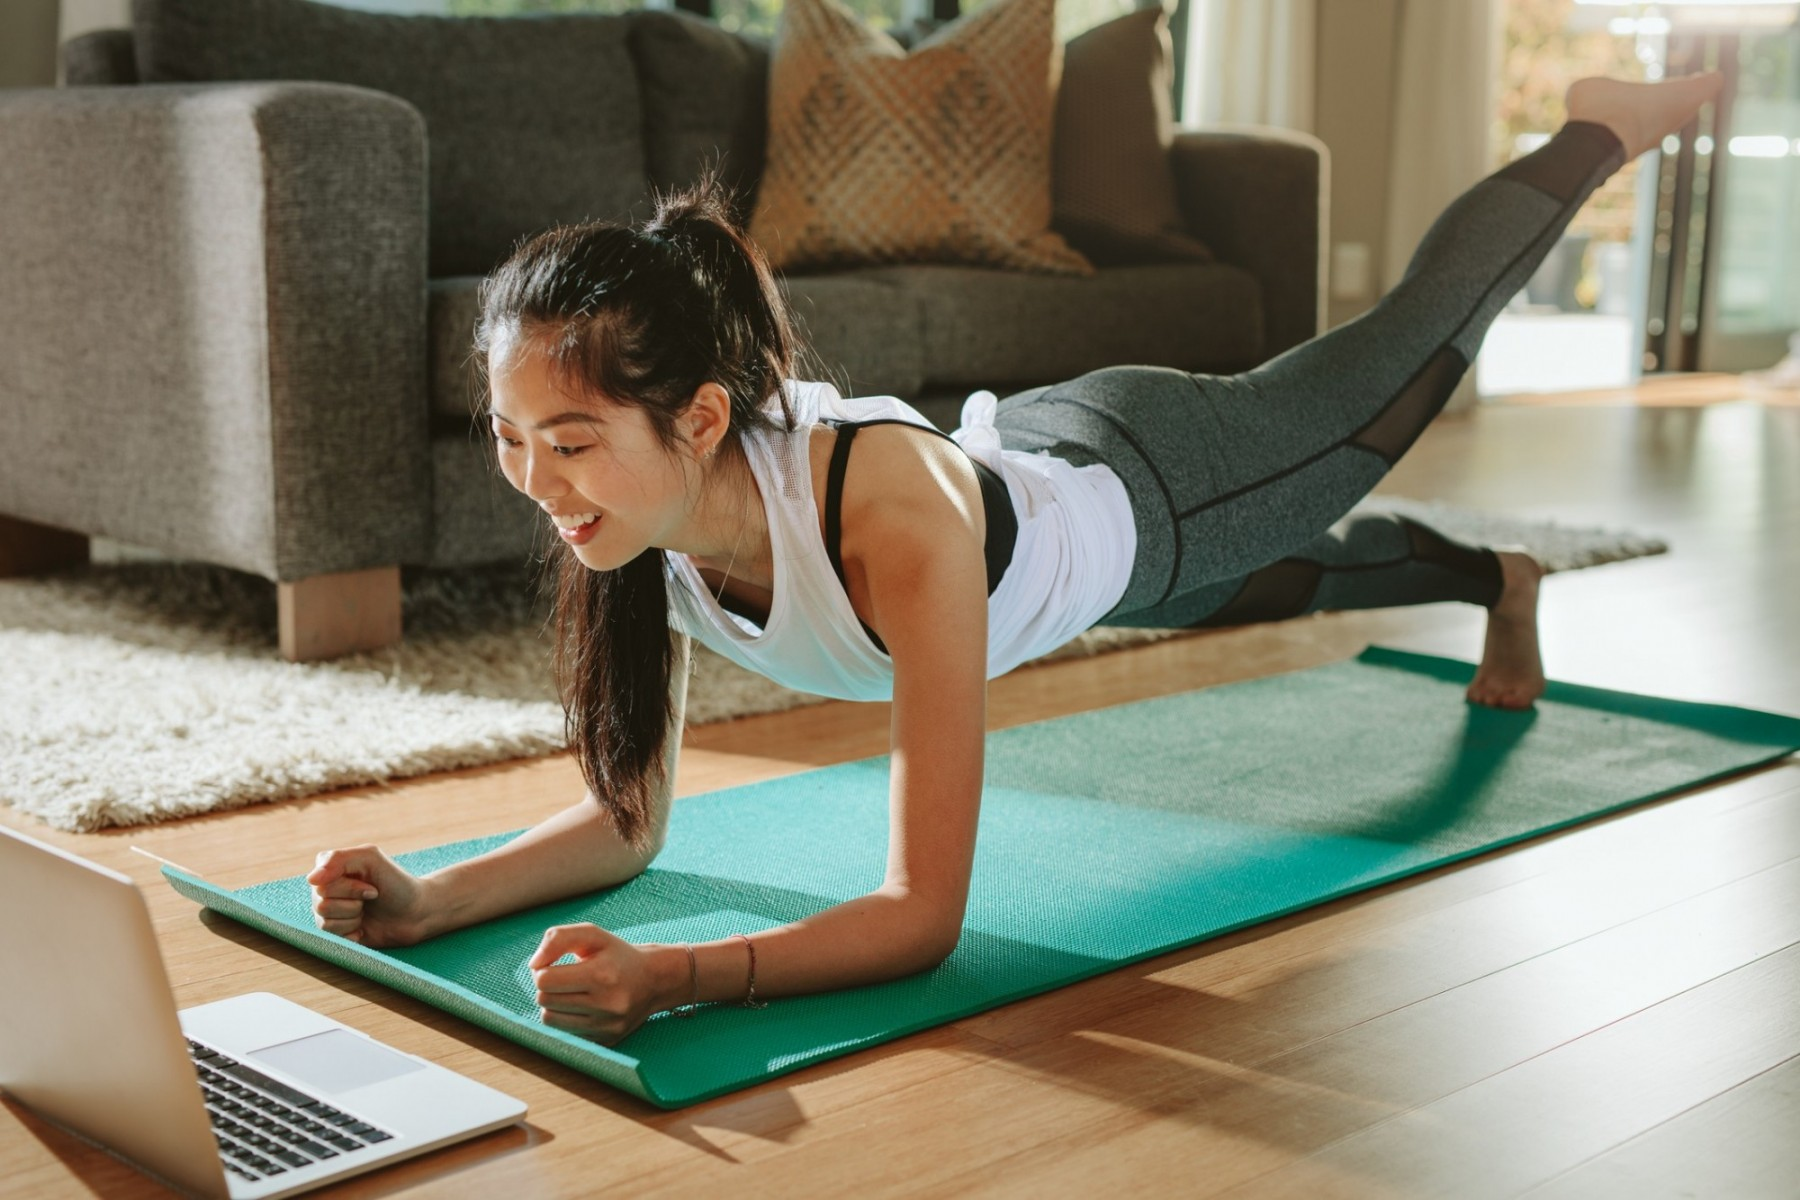 Woman doing yoga on a green mat in a livingroom